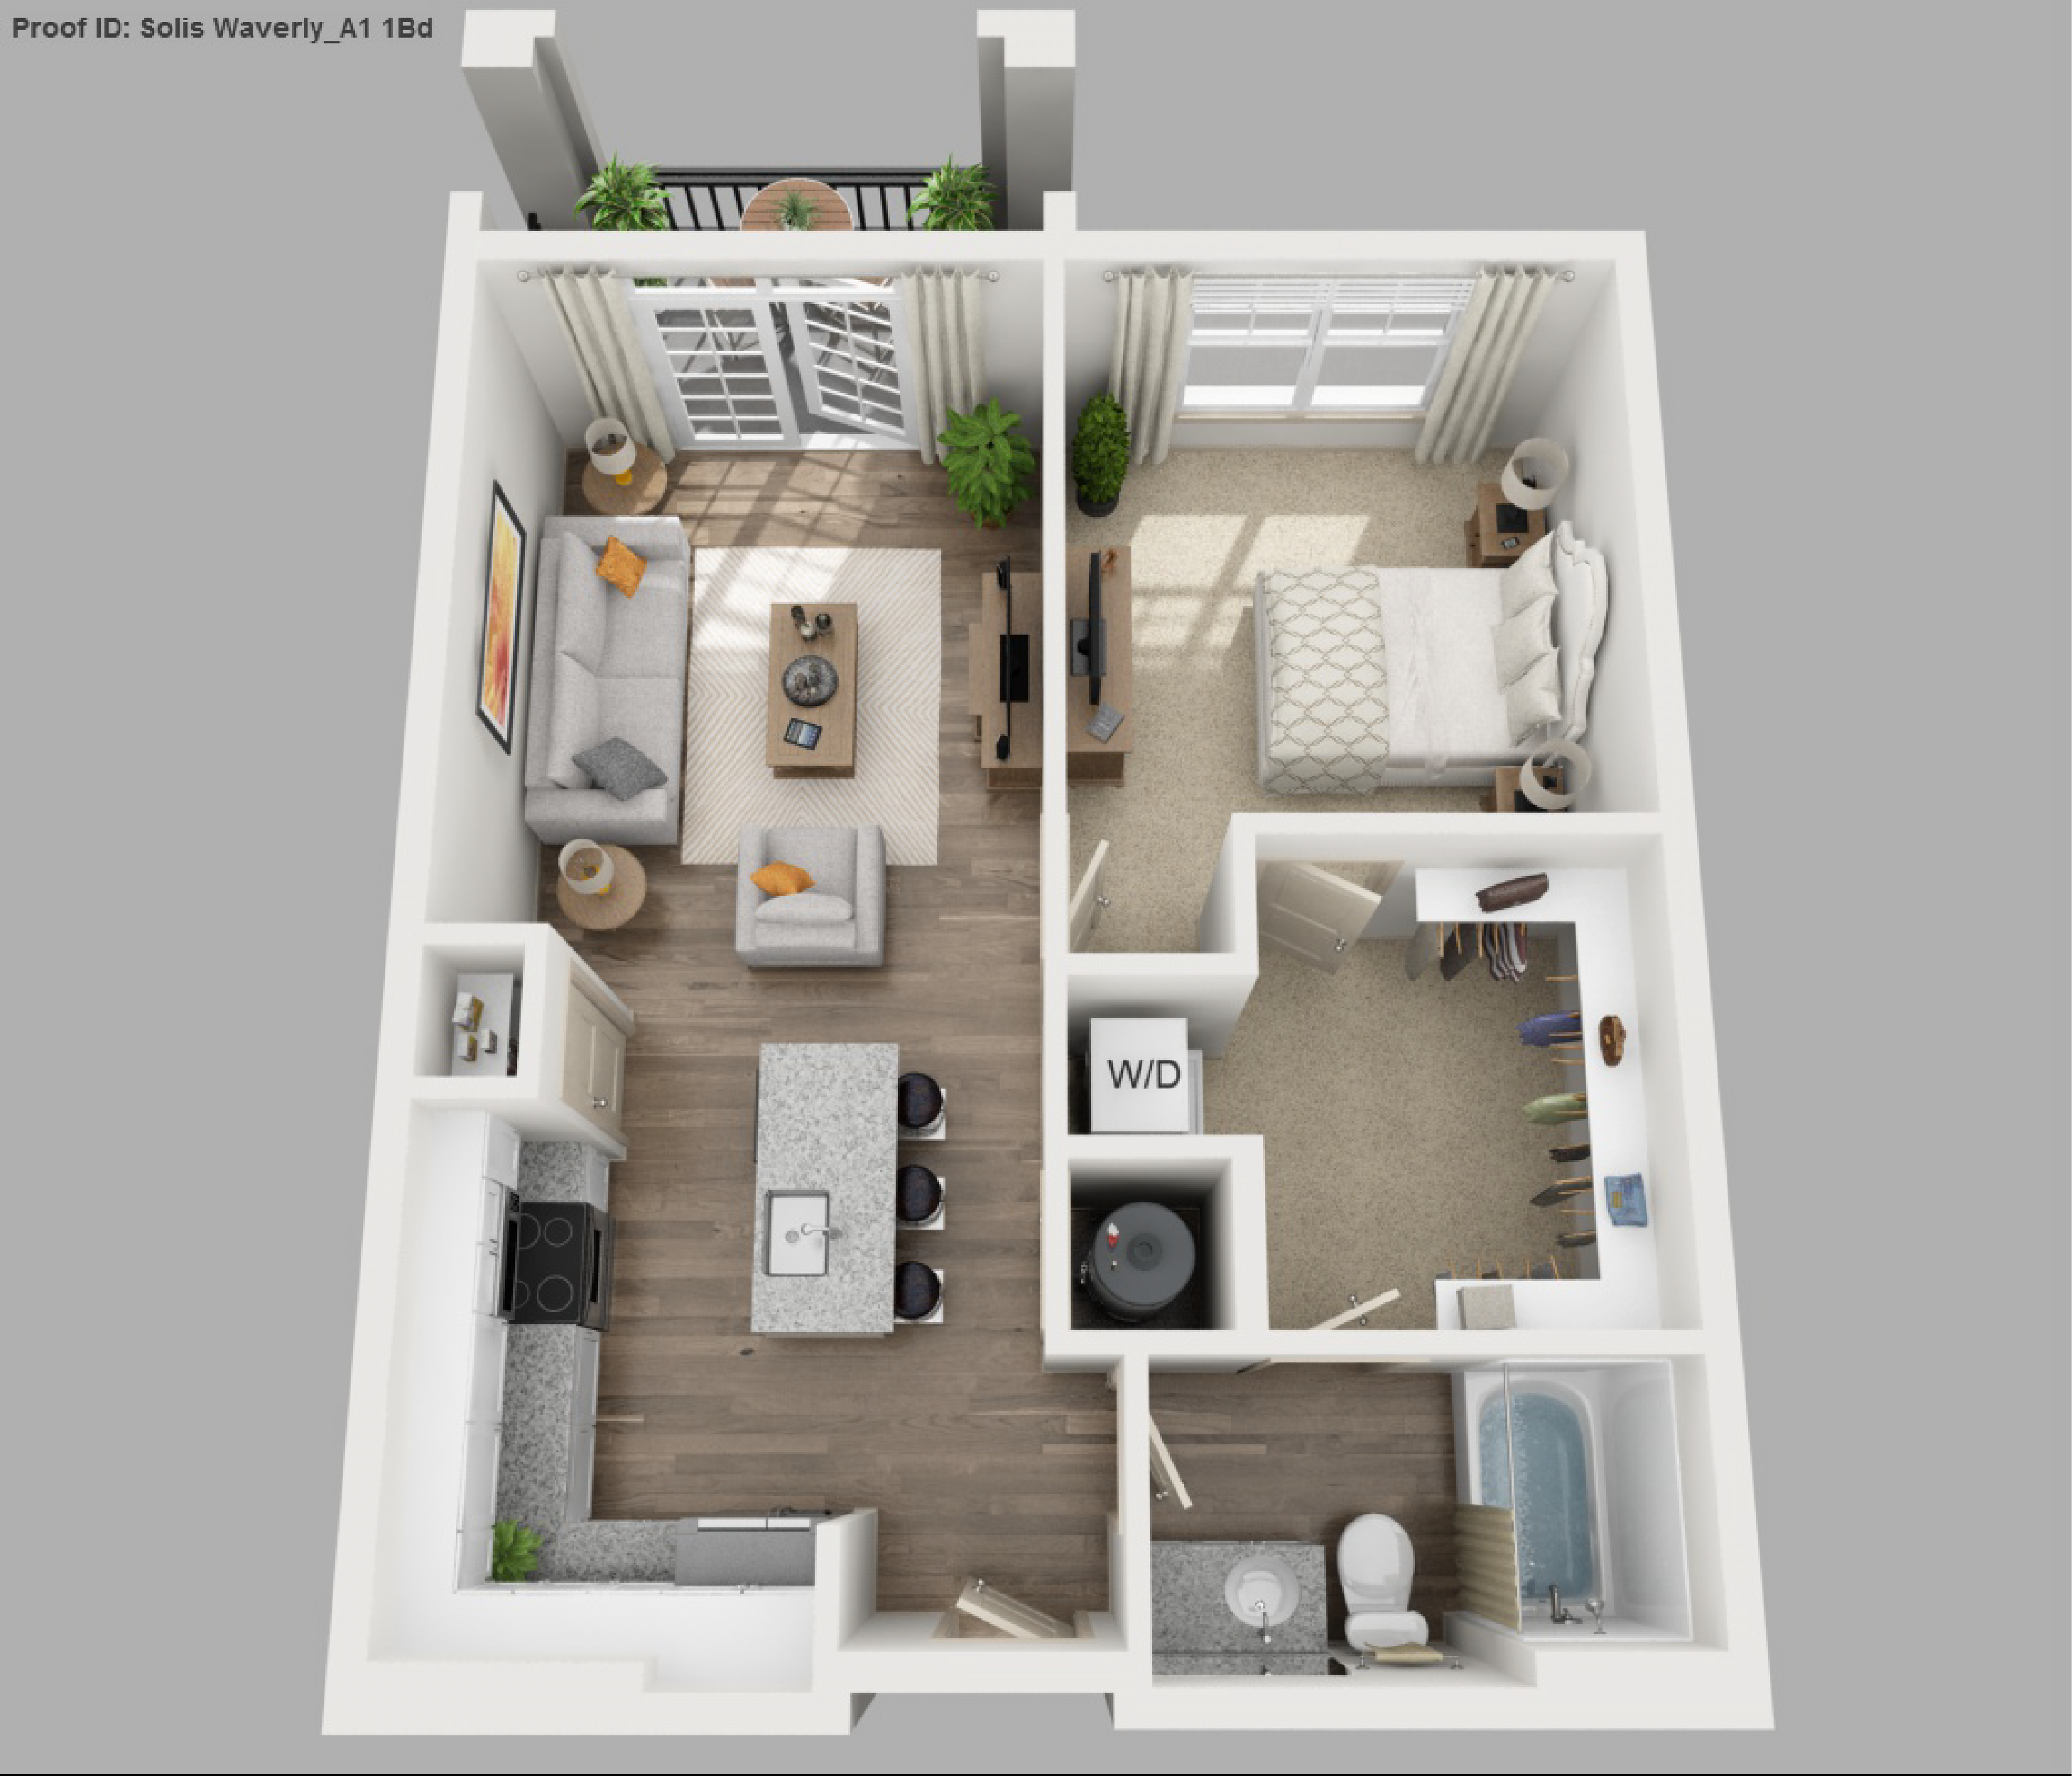 Bedroom Apartment Floor Plan solis apartments floorplans - waverly